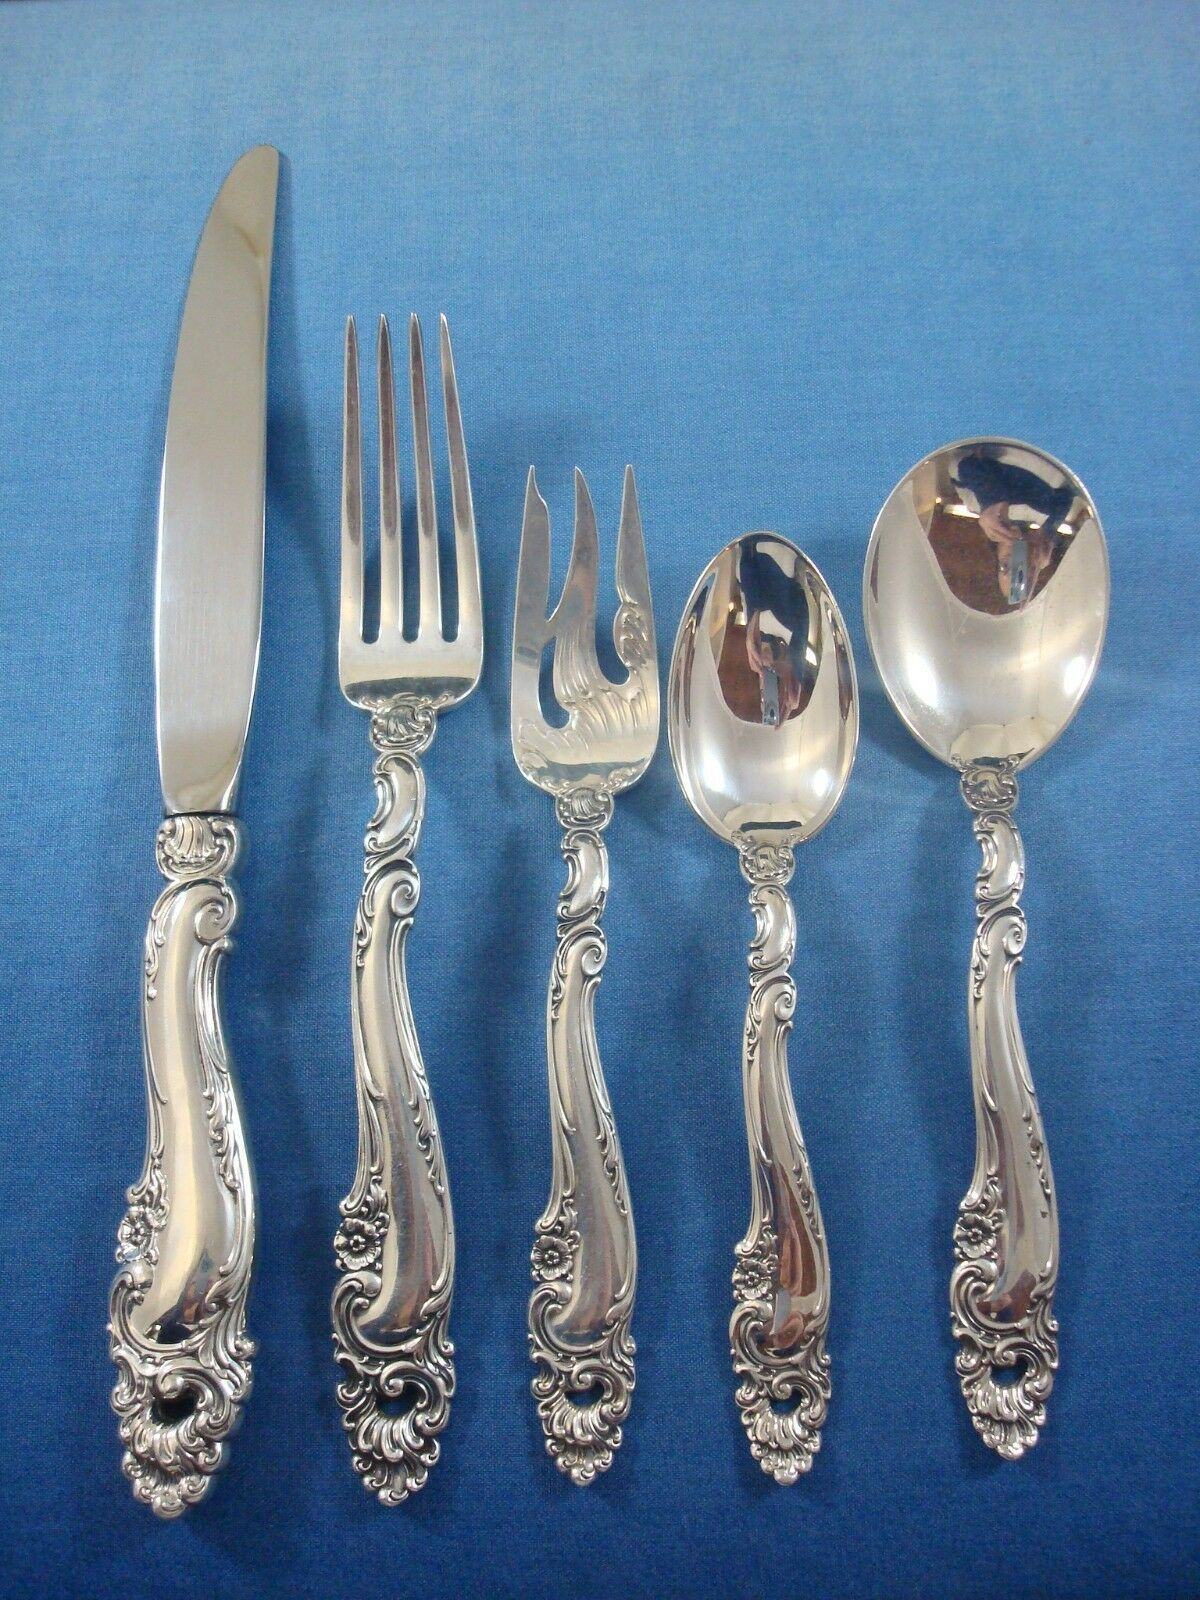 Primary image for Decor by Gorham Sterling Silver Flatware Set for 12 Service 63 Pieces Dinner